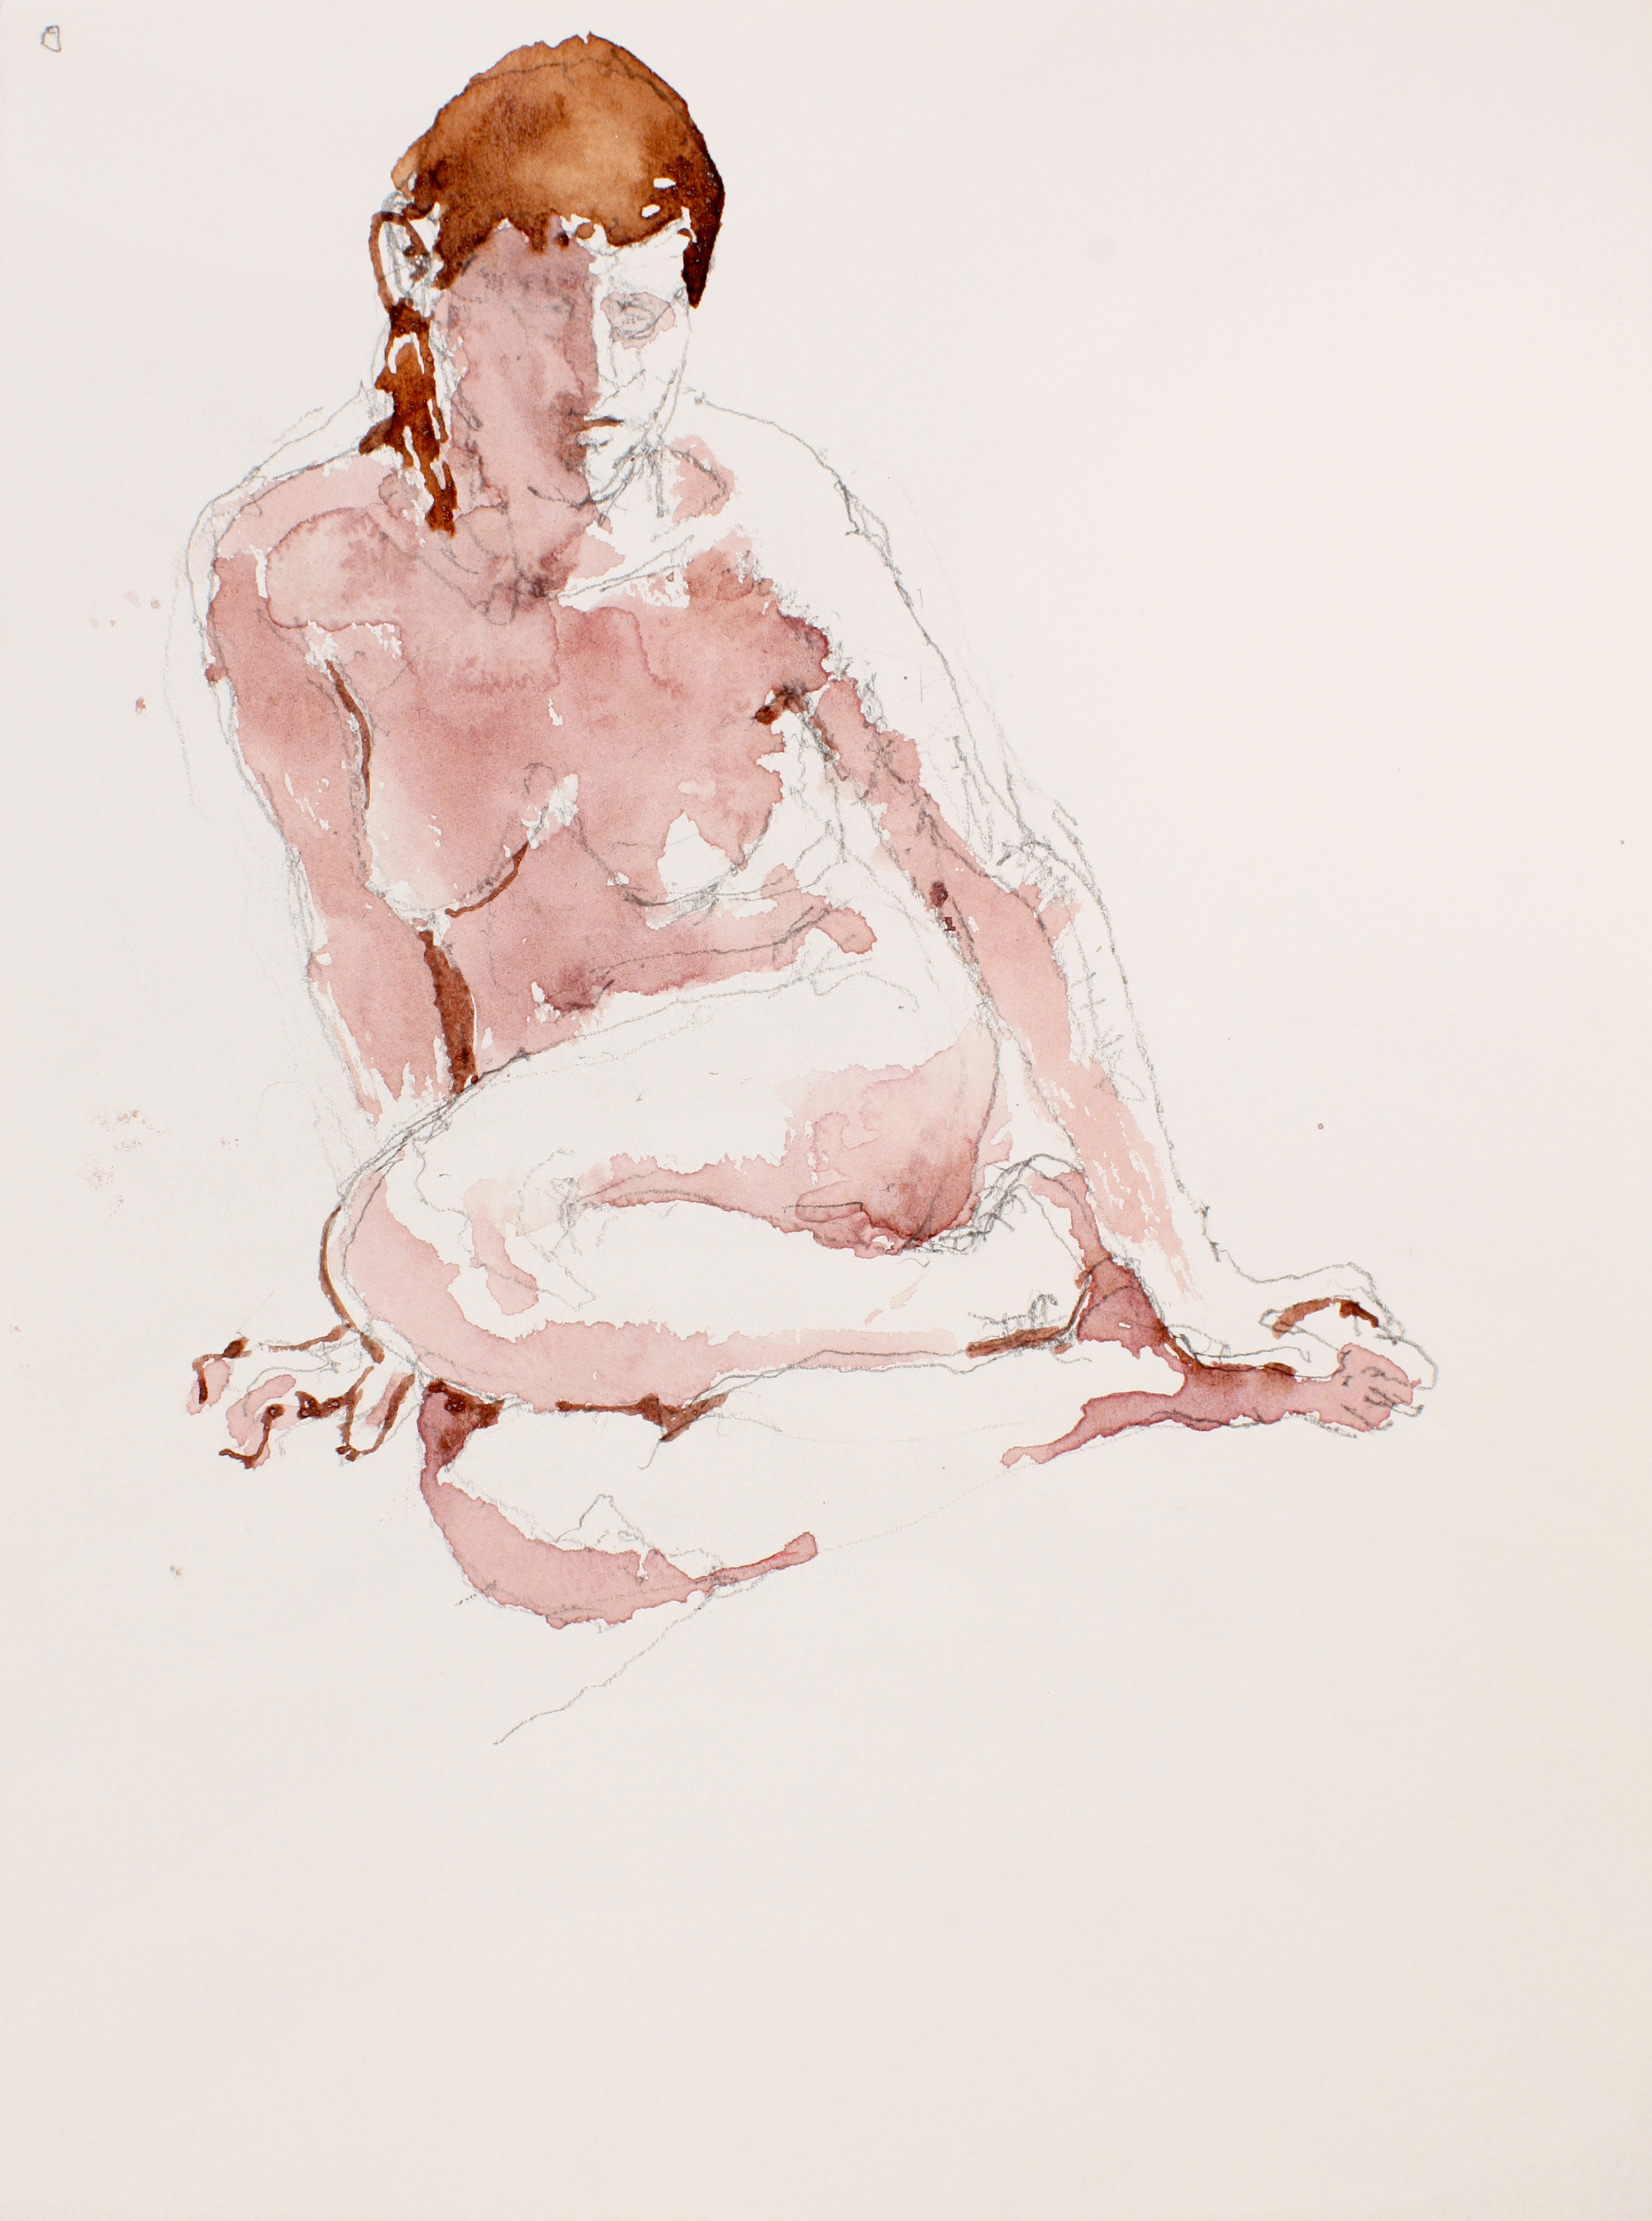 Seated Nude with Red Hair and Tucked Legs